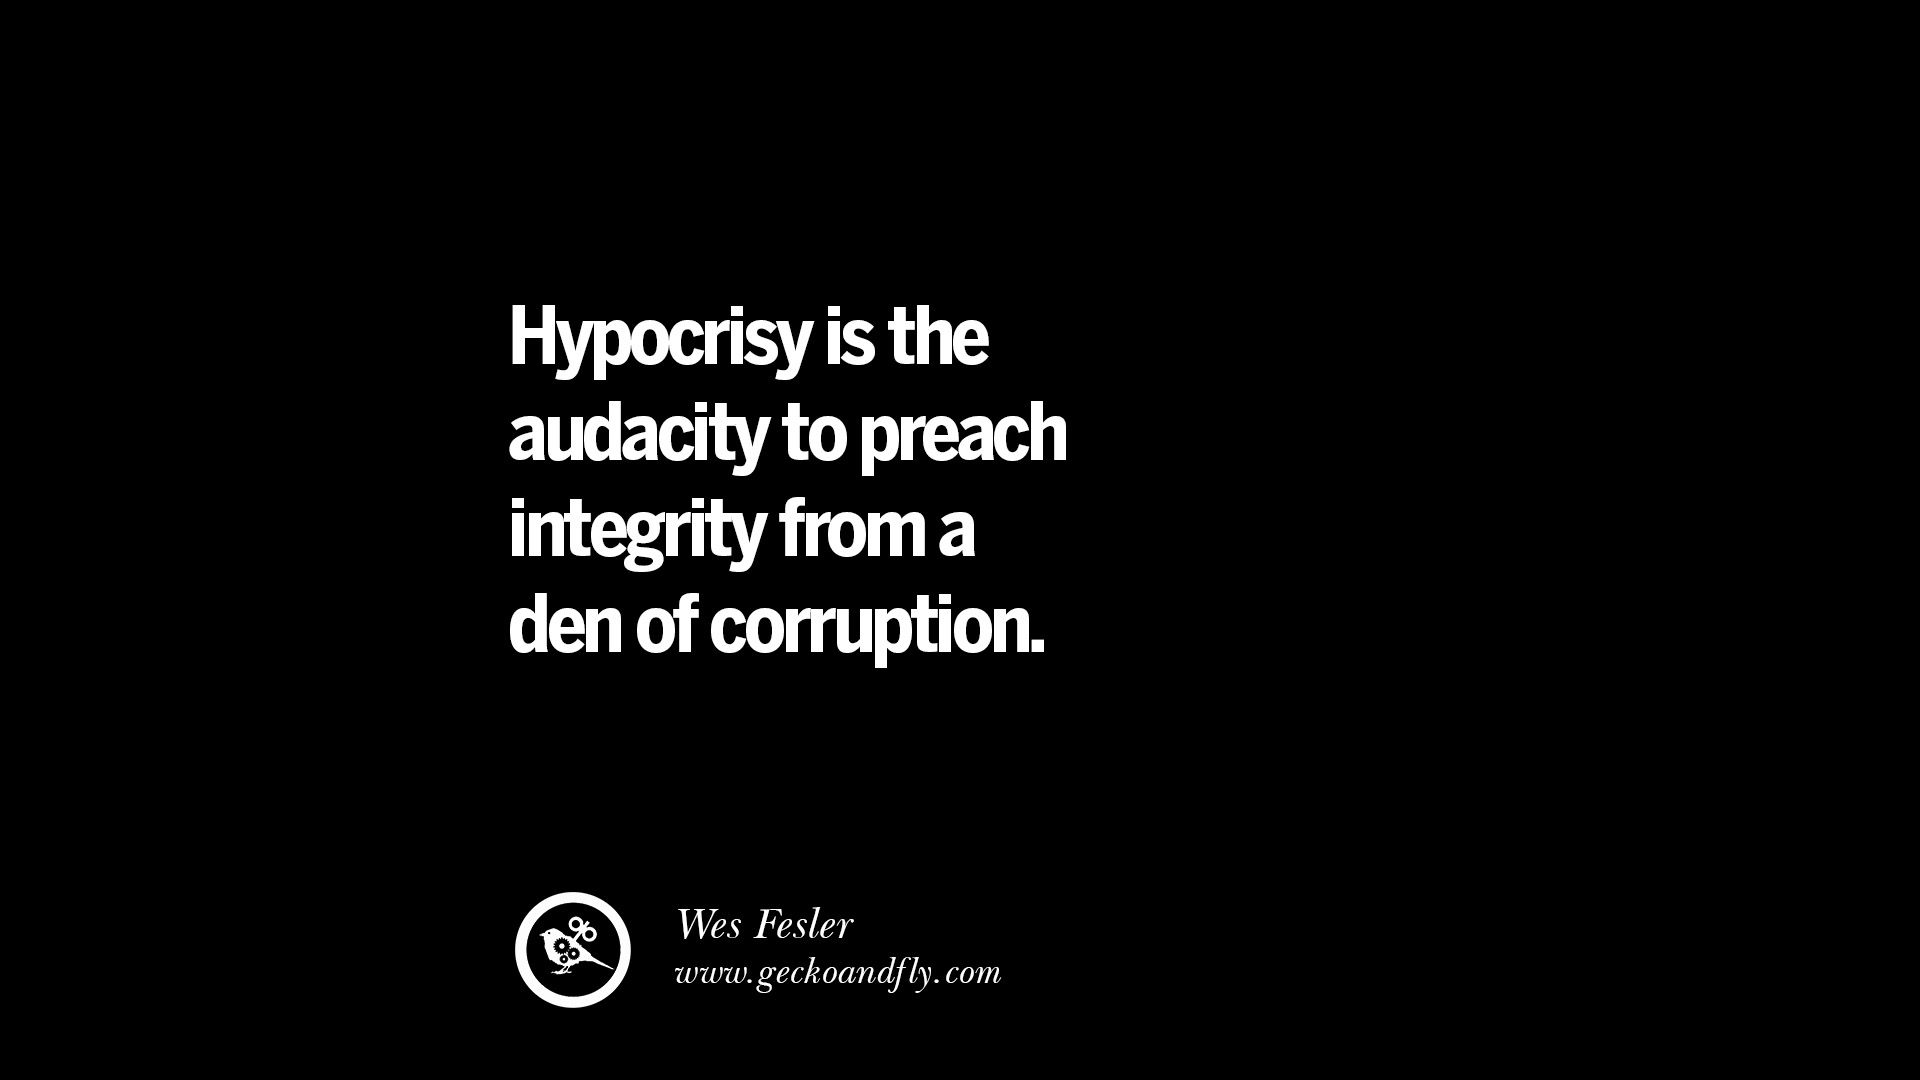 42 Anti Corruption Quotes For Politicians On Greed And Power Corrupt Quotes Government Quotes Powerful Quotes